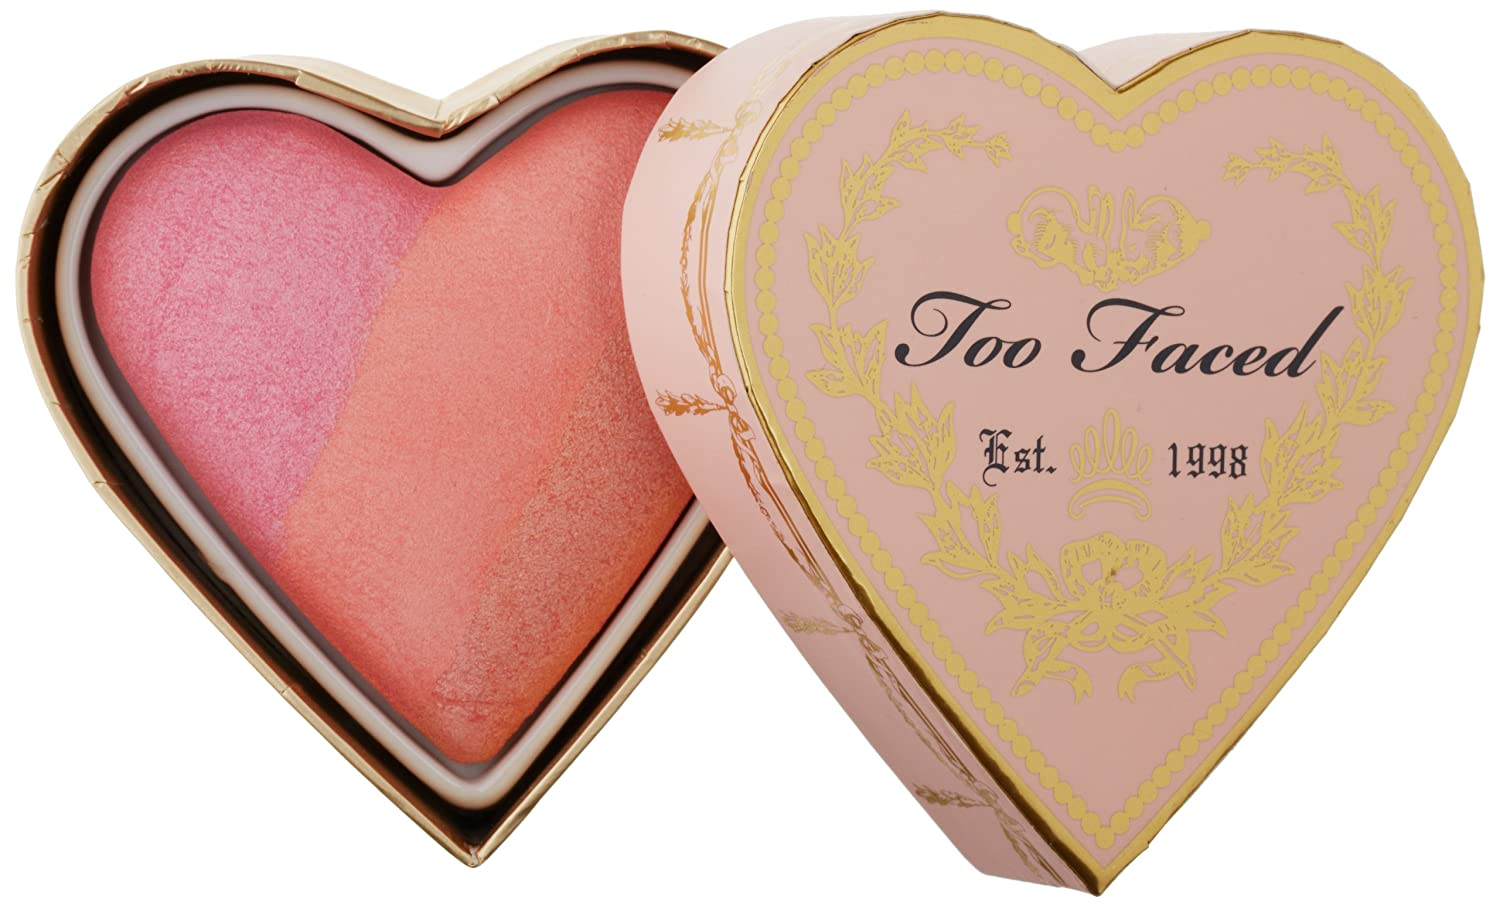 Too Faced Sweethearts Perfect Flush Blush Candy Glow 651986904136